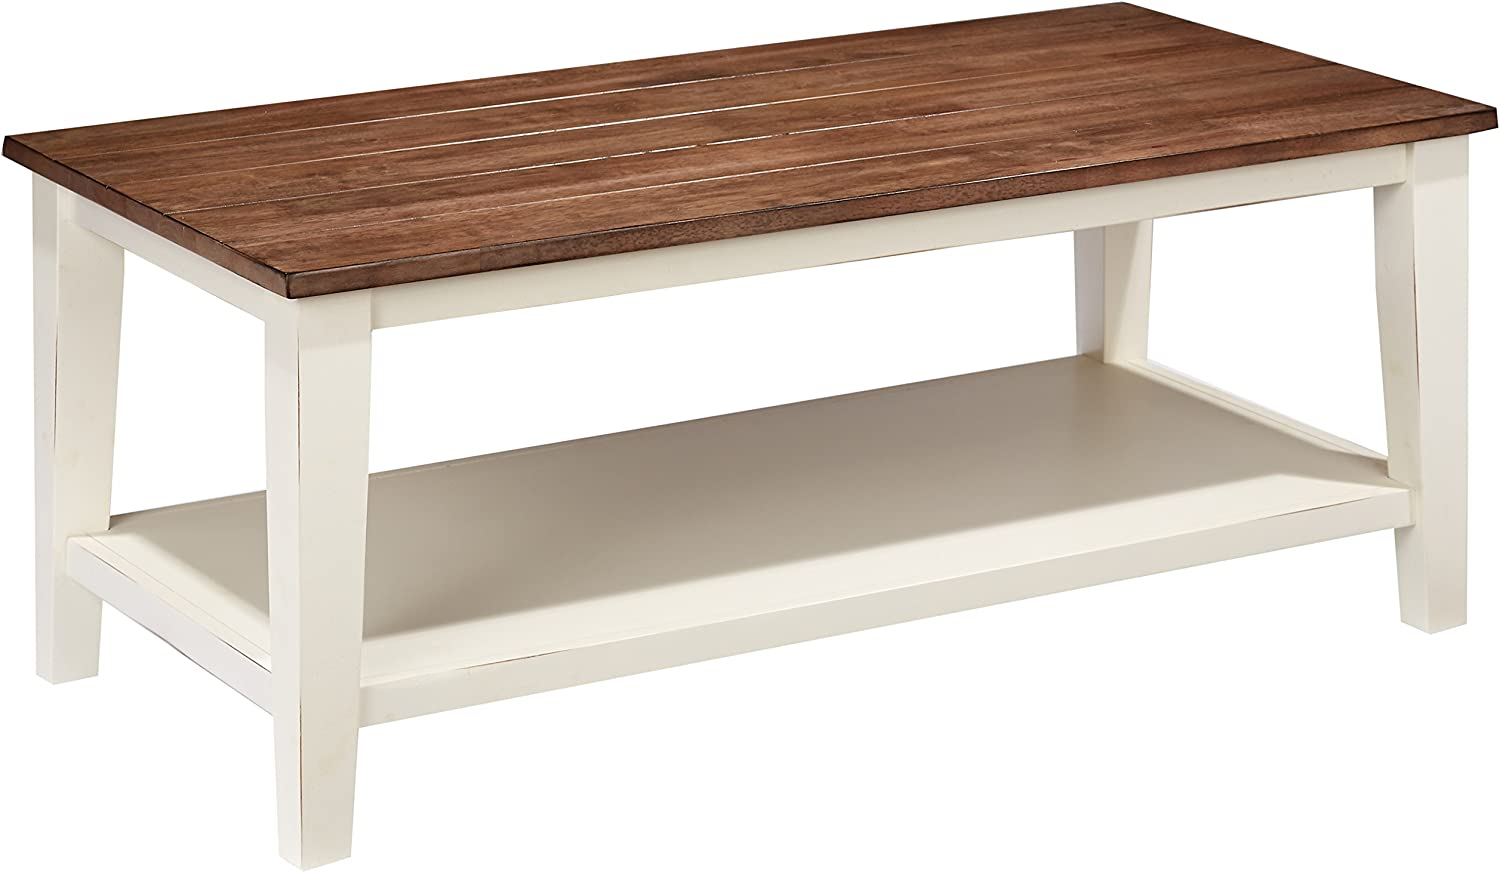 Simmons Casegoods Cocktail Table, Greige White